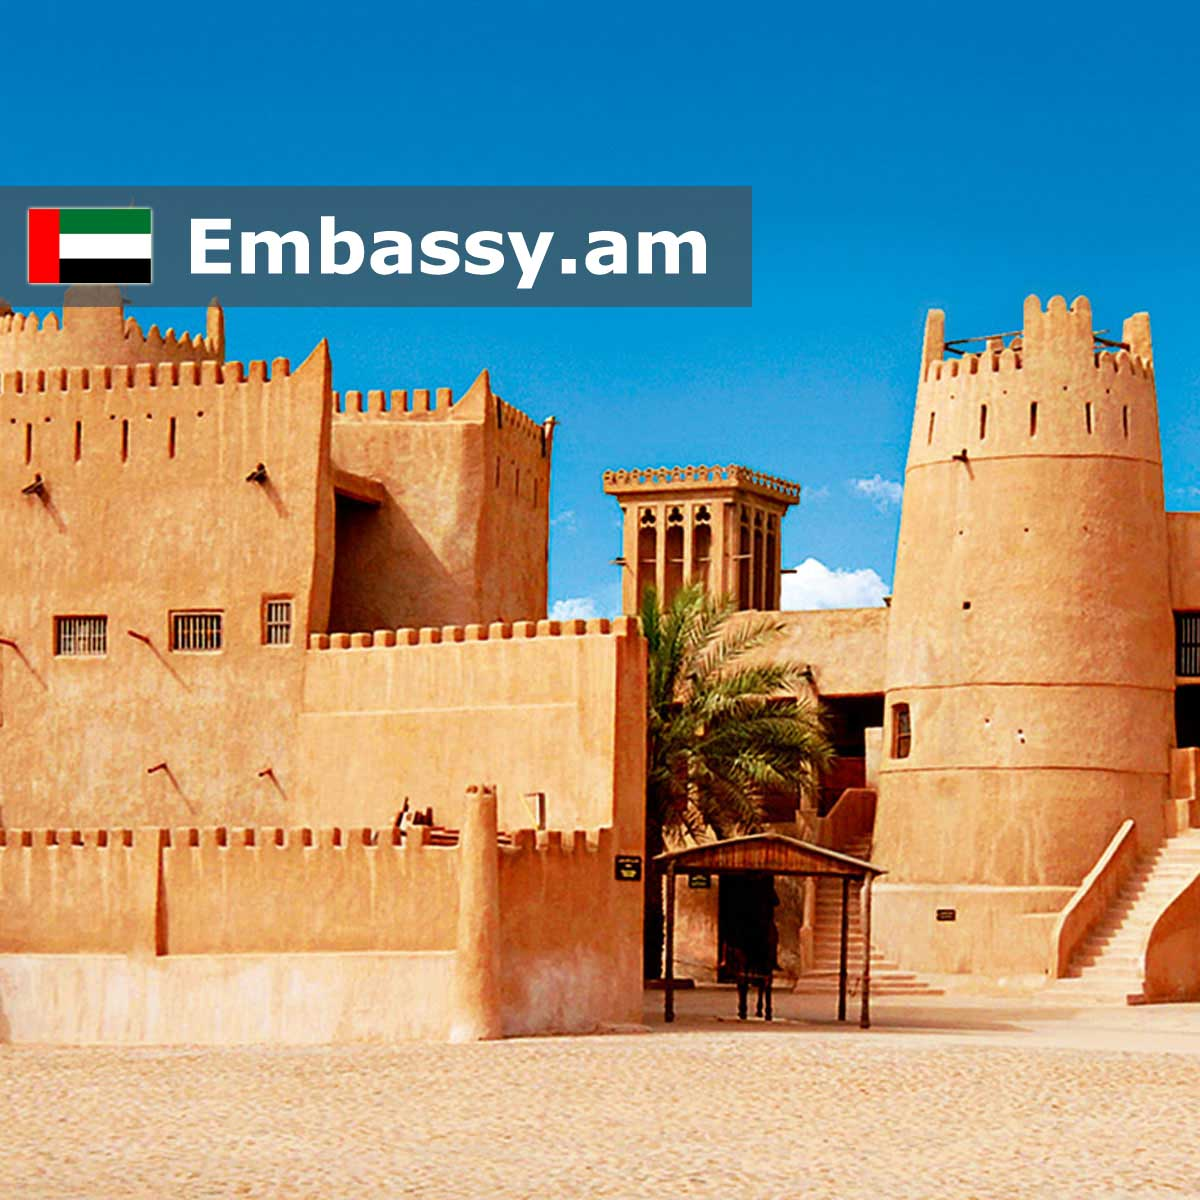 Ajman - Hotels in the United Arab Emirates - Embassy.am